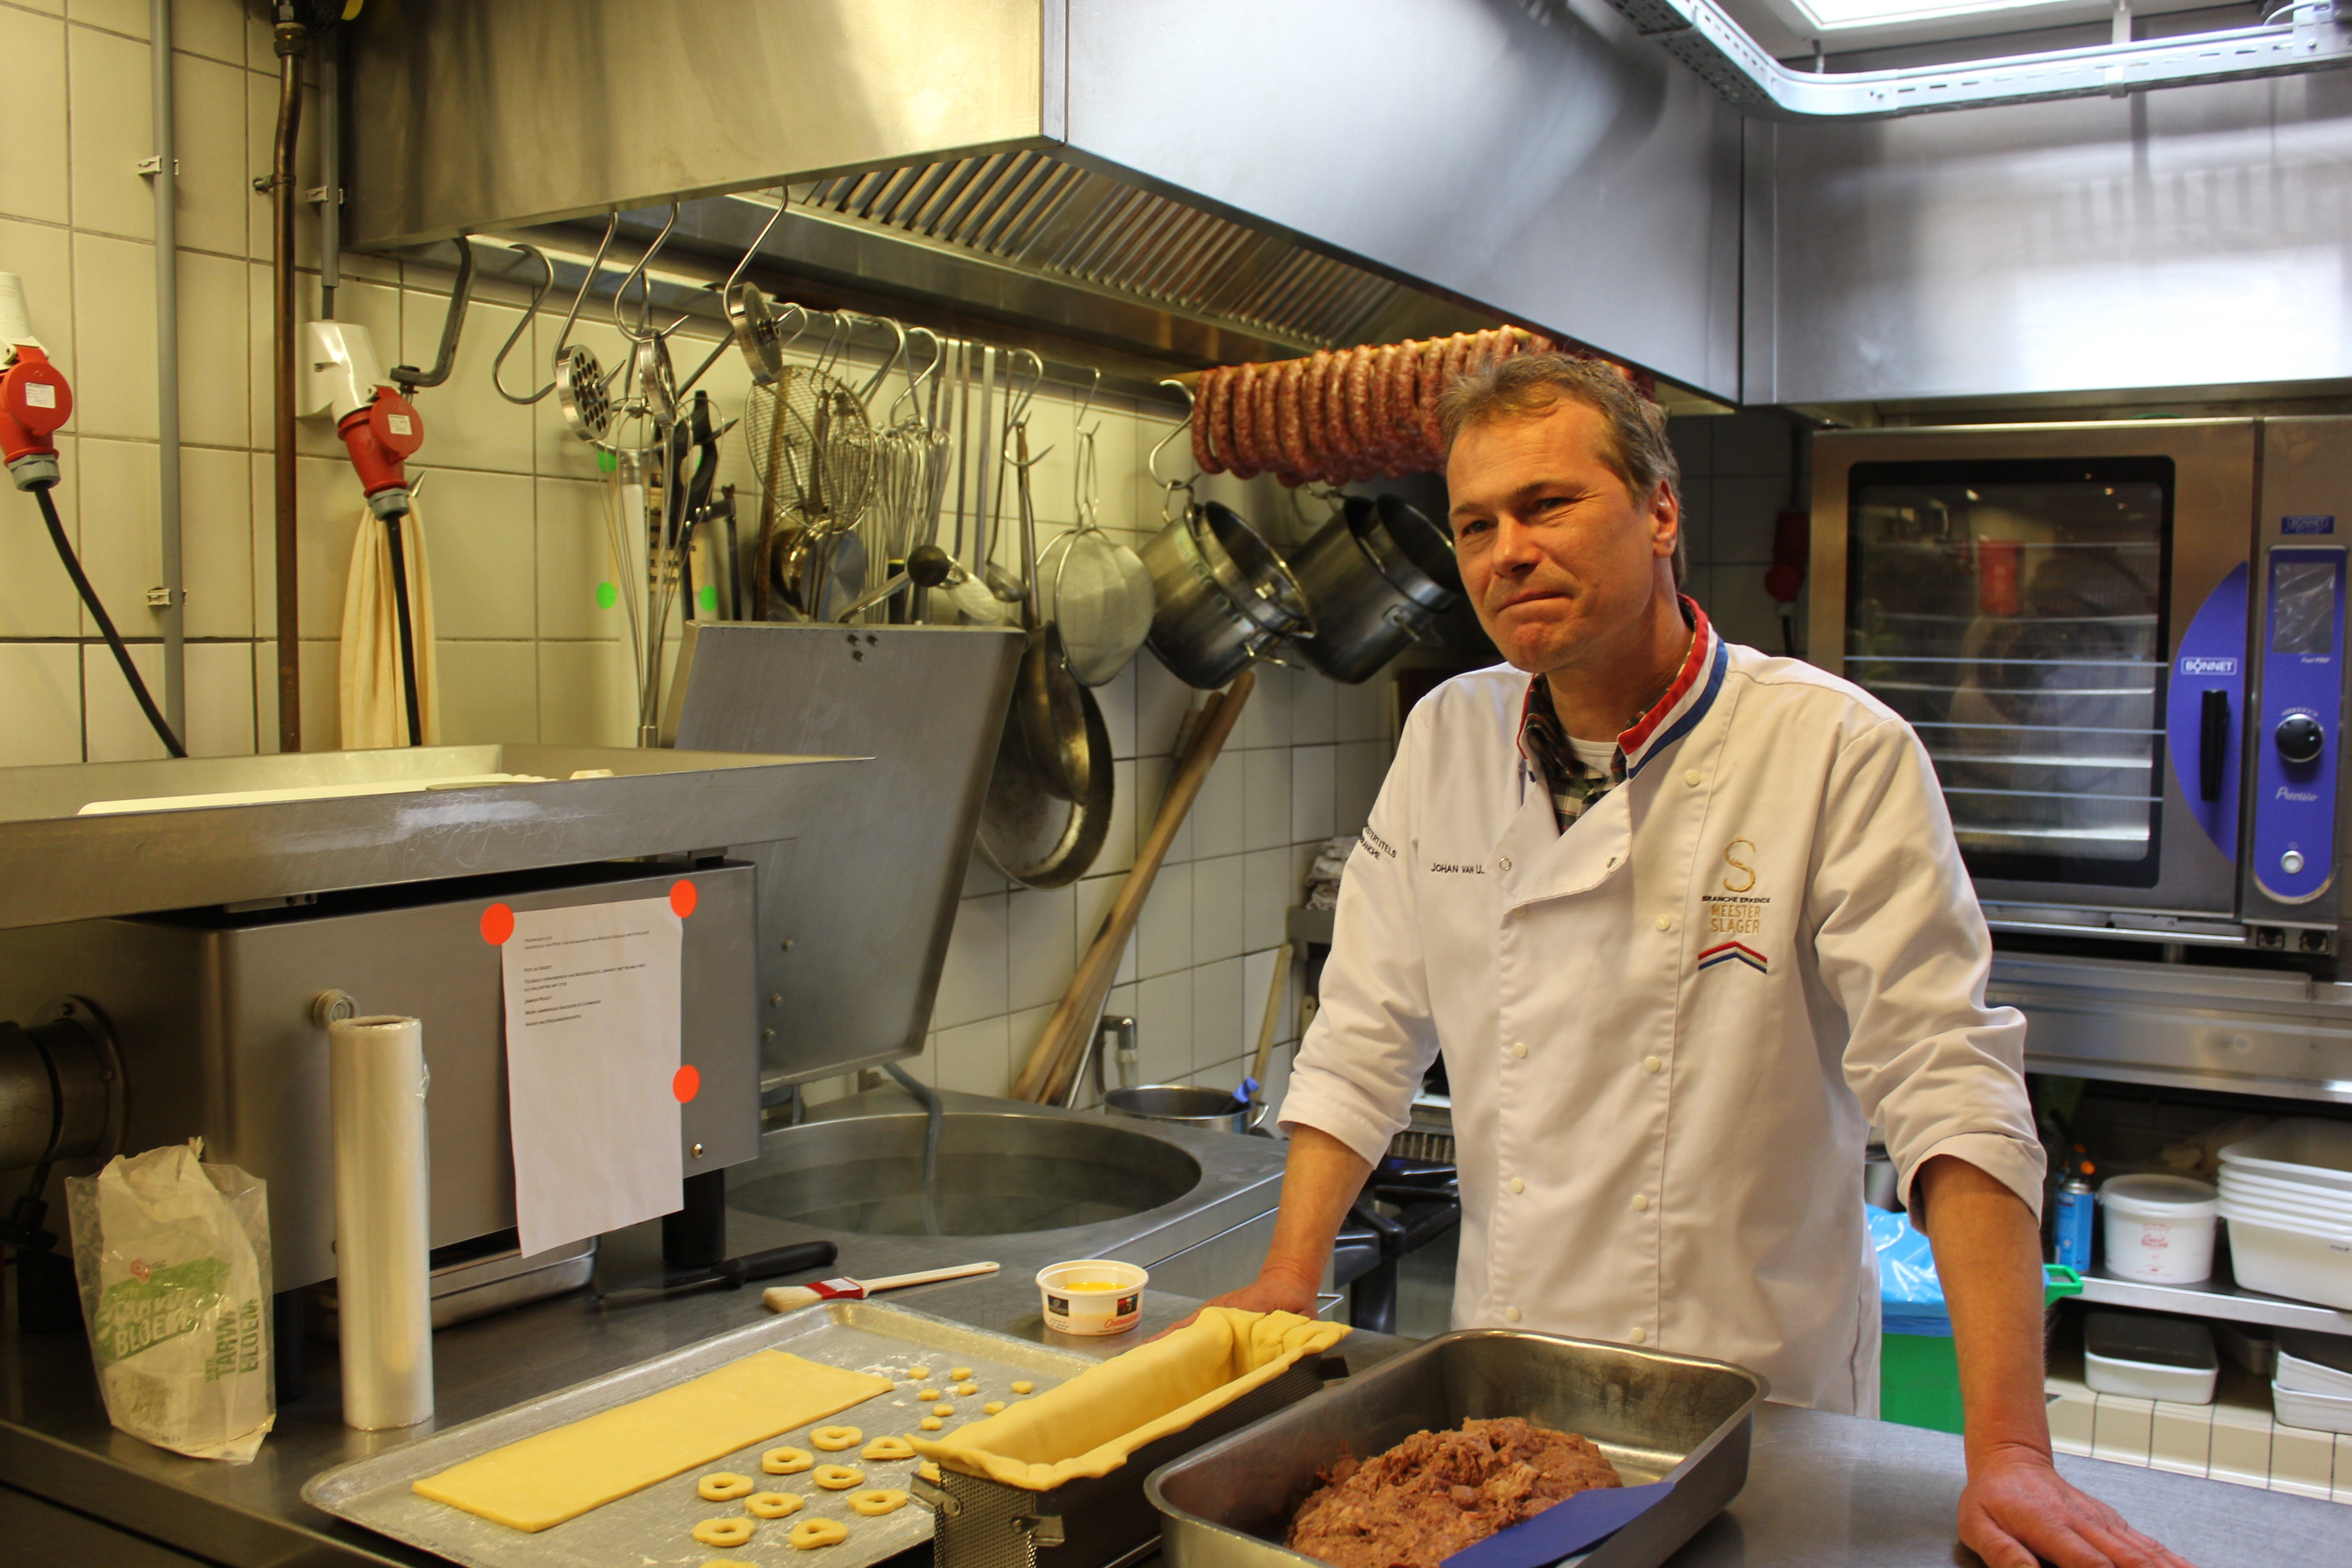 master butcher Johan van Uden &quot;width =&quot; 5184 &quot;height =&quot; 3456 &quot;/&gt; </figure> <h2> A look at the butcher shop </h2> <p> Culy was invited by Johan to the Chateaubriand butcher in Heemstede to see what the components of such a test would look like. </p> <p> It is immediately clear that Johan has a passion for his profession. the moment we step into the butcher shop. The meat is treated here with love. &quot;Meat is not thrown in my butcher shop,&quot; says Johan resolutely. &quot;We treat the meat here as we treat women: with respect,&quot; adds his apprentice and assistant to the Master&#39;s Test. </p><div class='code-block code-block-7' style='margin: 8px 0; clear: both;'> <script async src=